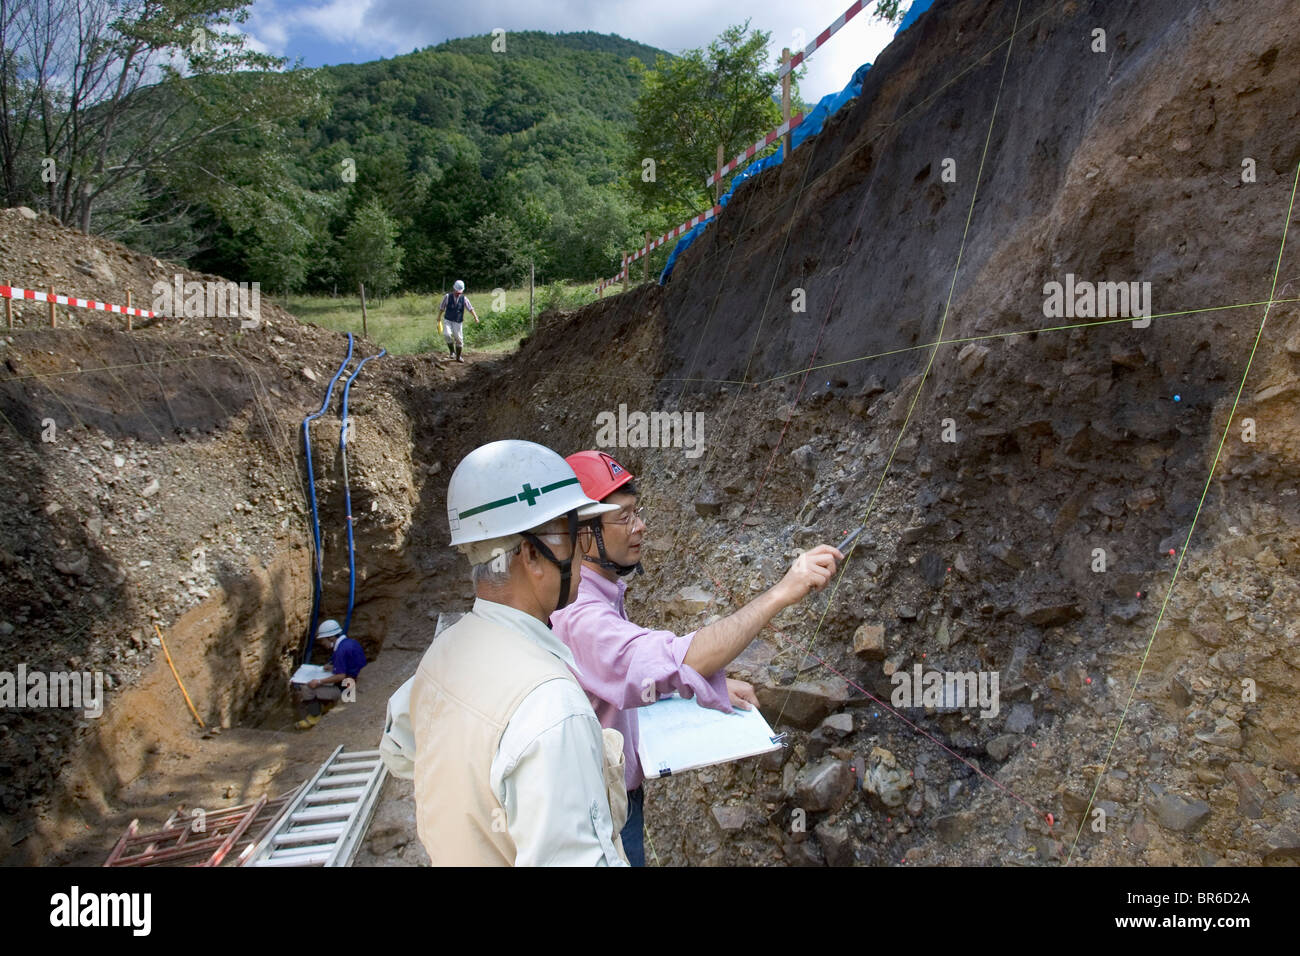 Trench work on a fault in Japanese Alps. - Stock Image